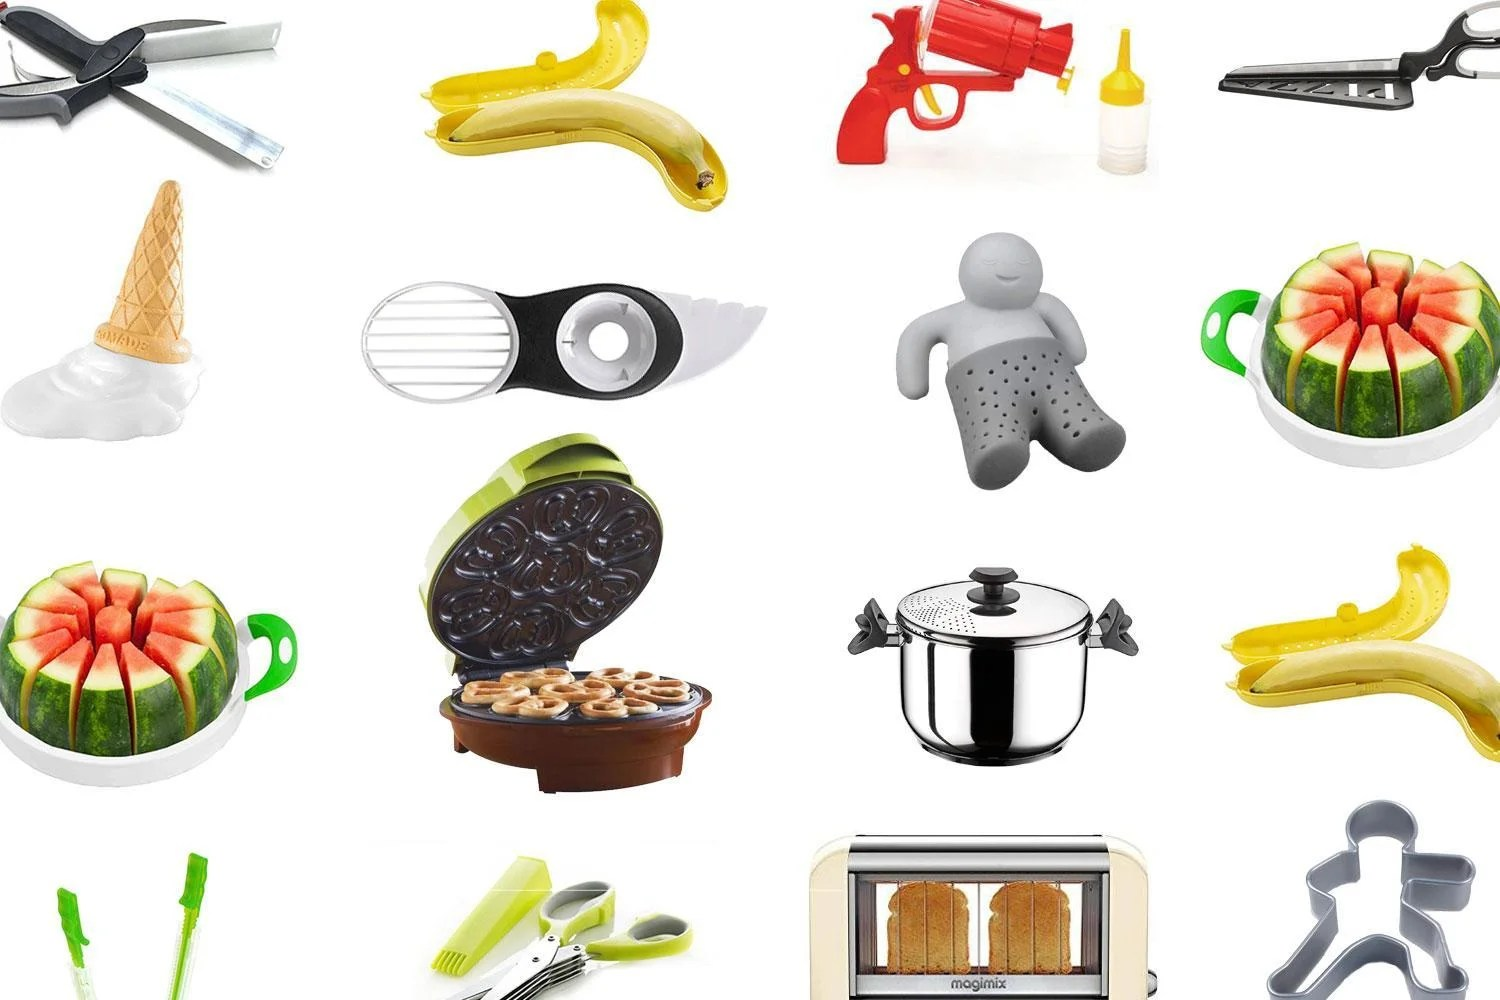 Gadget Cuisine 21 Best Kitchen Gadgets You Never Knew Existed London Evening